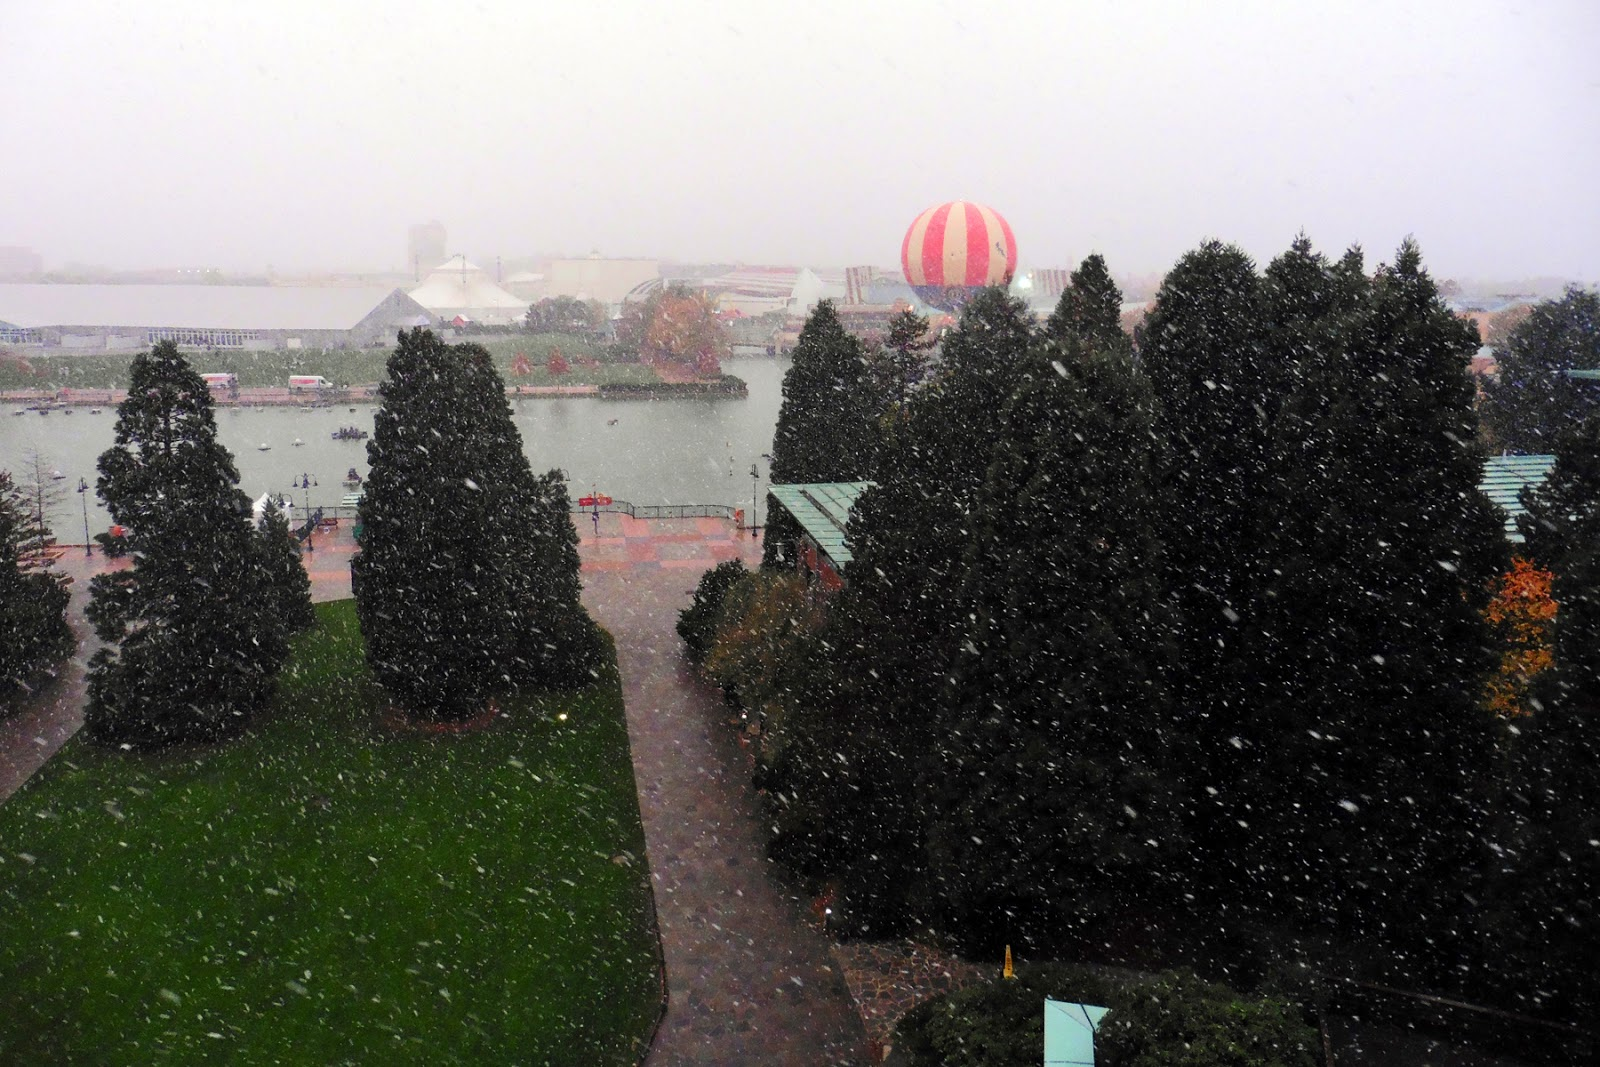 Snow flurries from Disney's Sequoia Lodge at Disneyland Paris